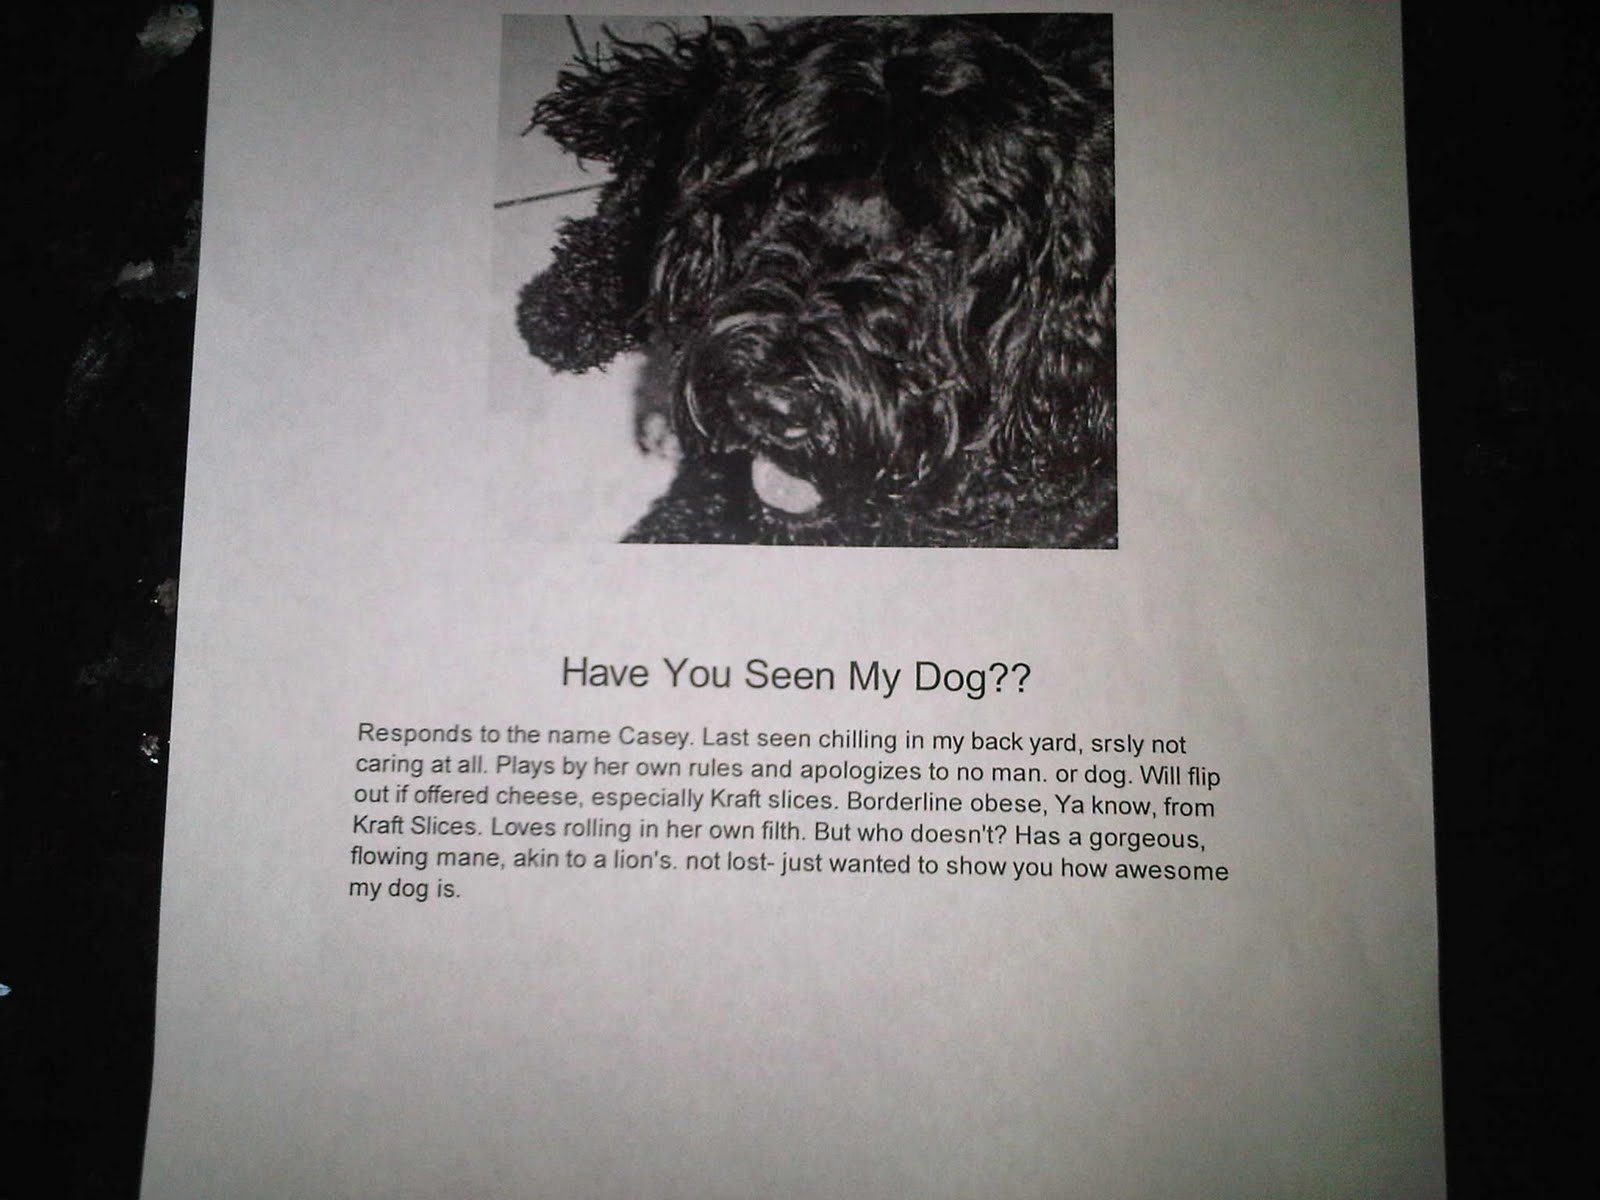 [SLUGLIST]: Have you seen my dog?